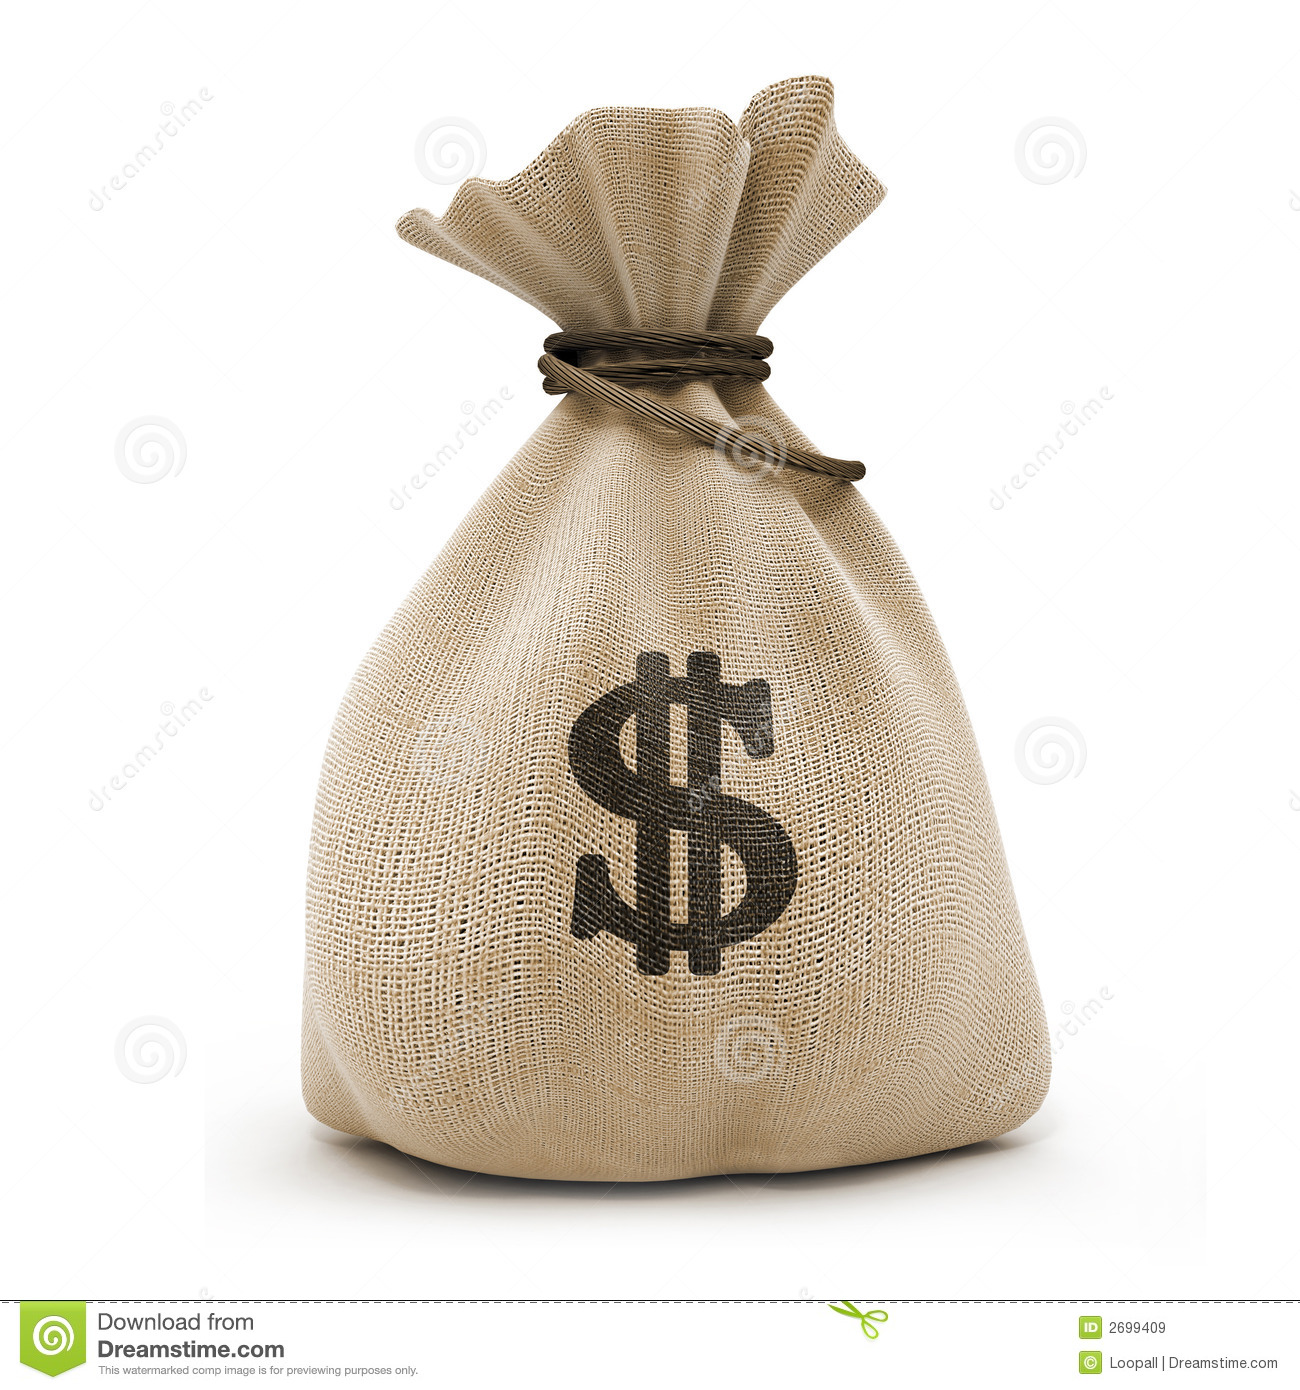 Sack with money dollar currency isolated with clipping path inckuded.